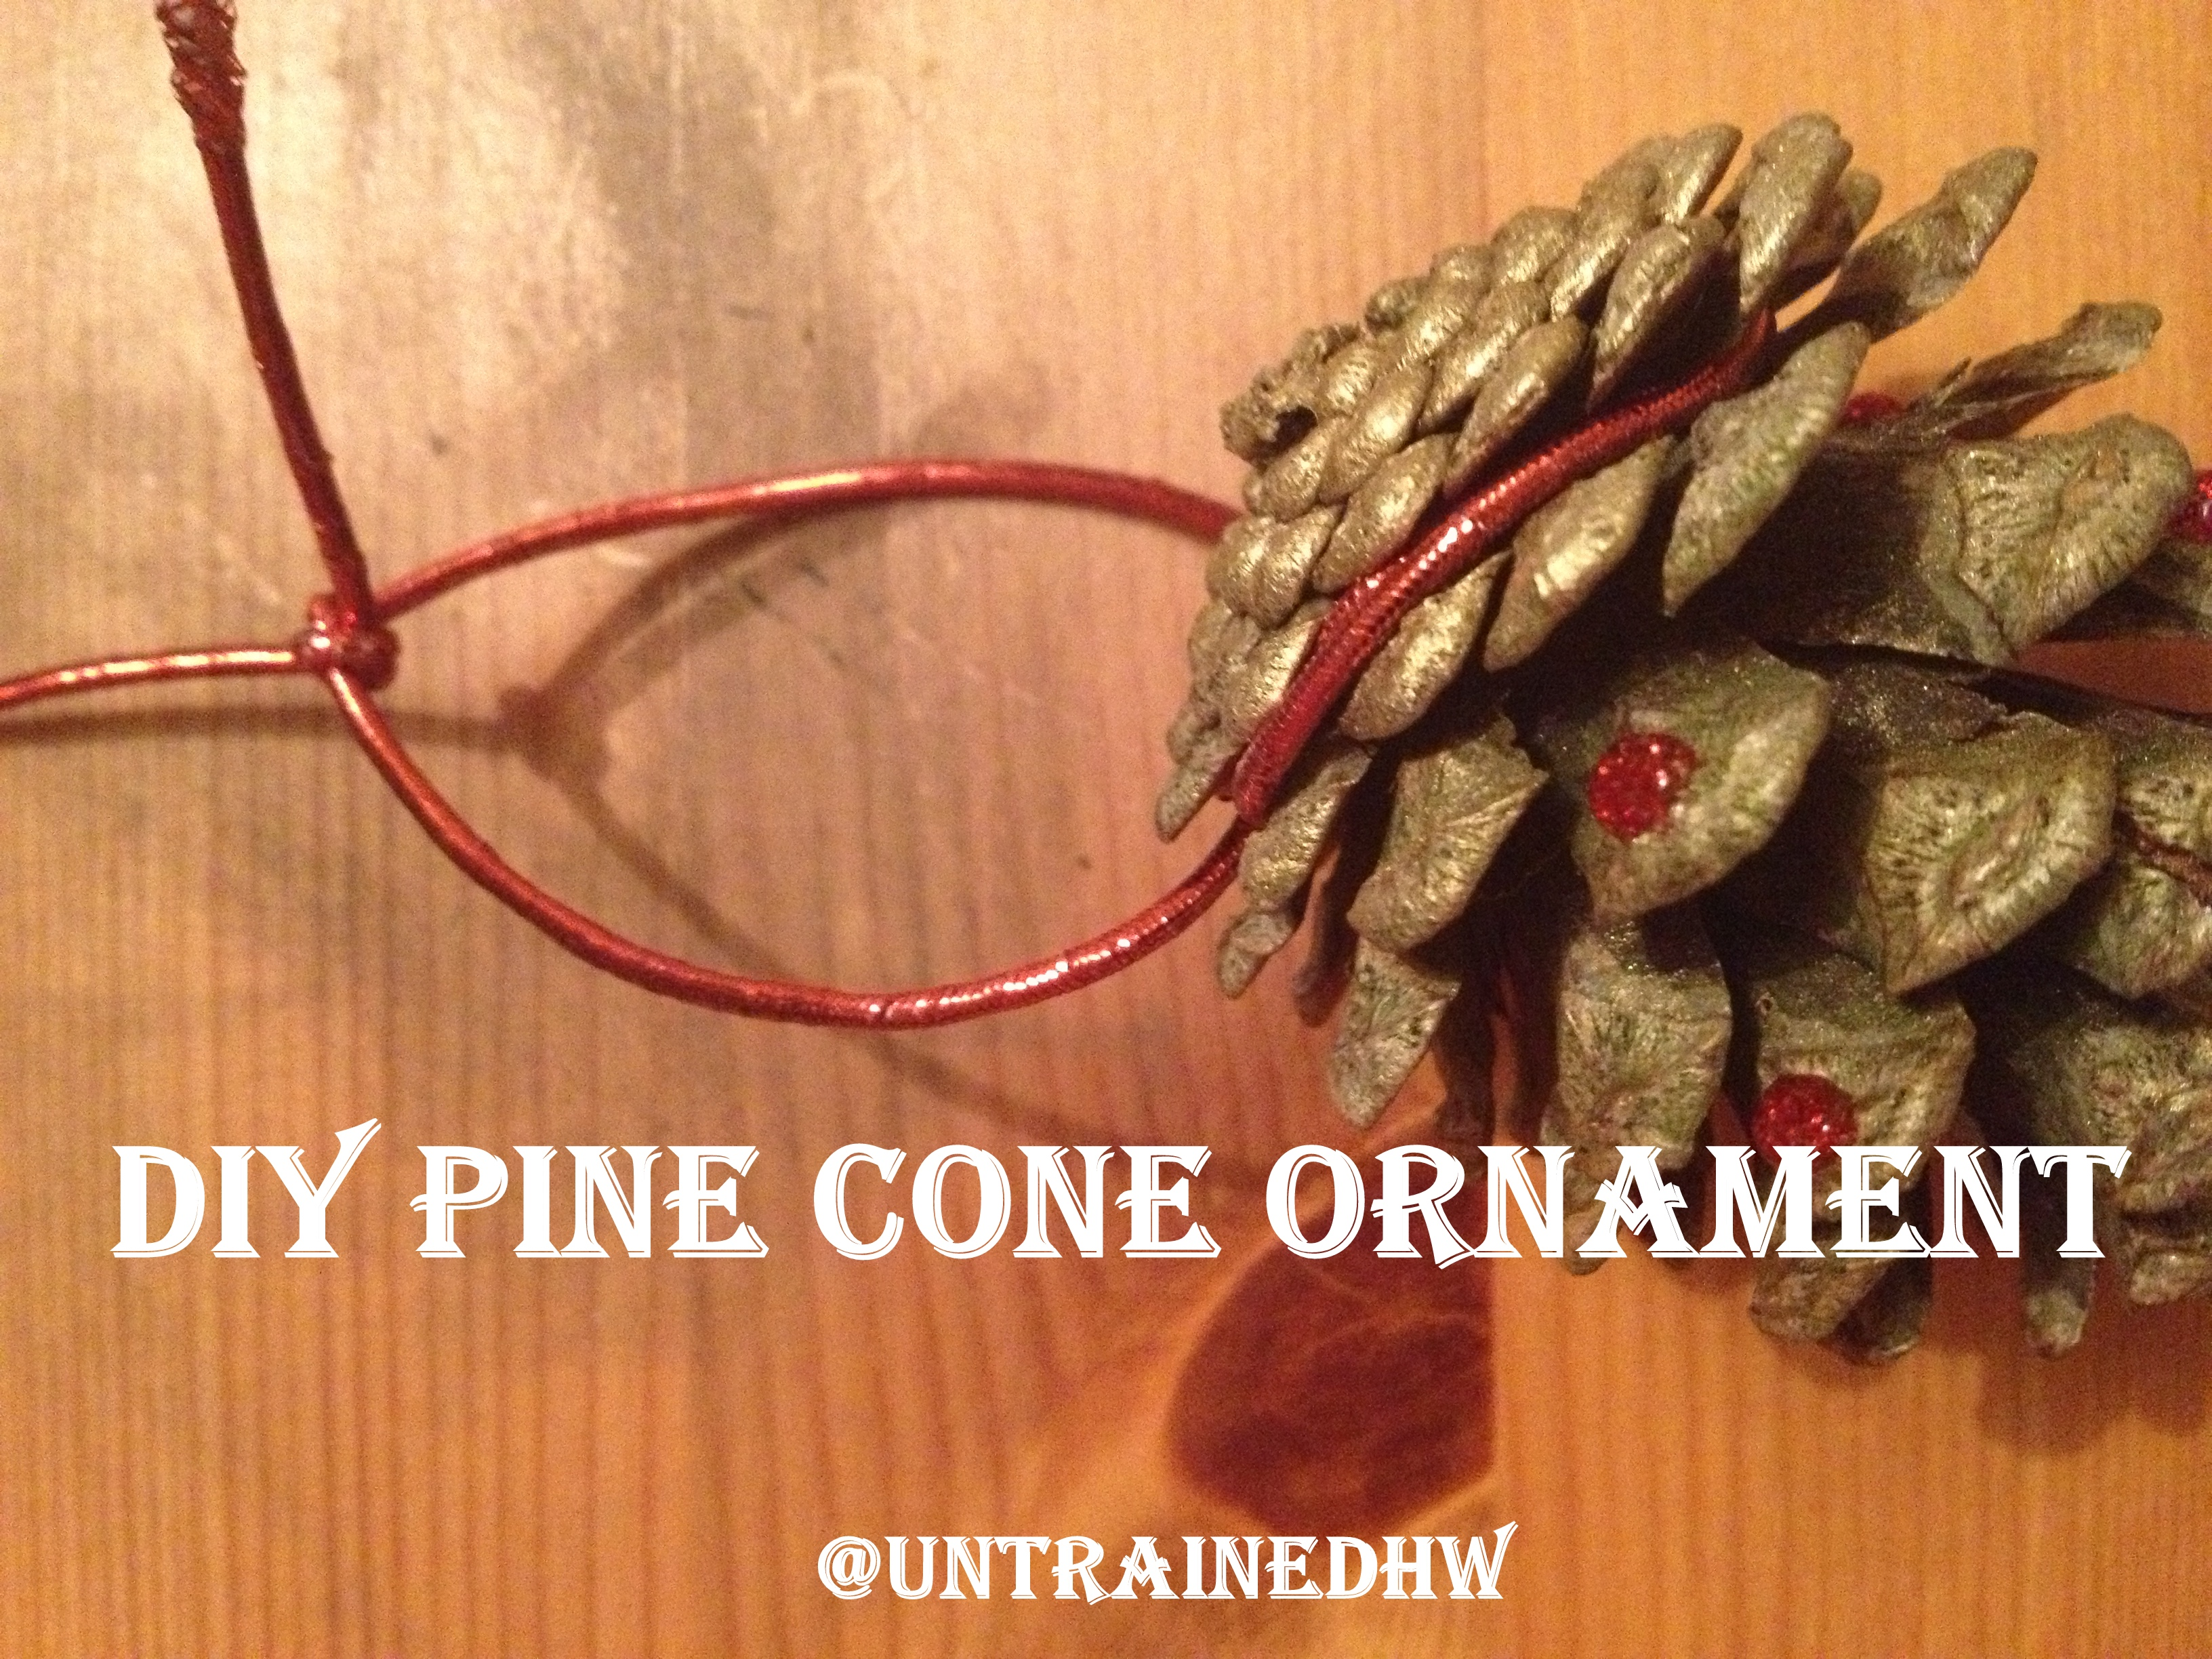 diy pine cone christmas tree decorations - How To Decorate Pine Cones For Christmas Ornaments